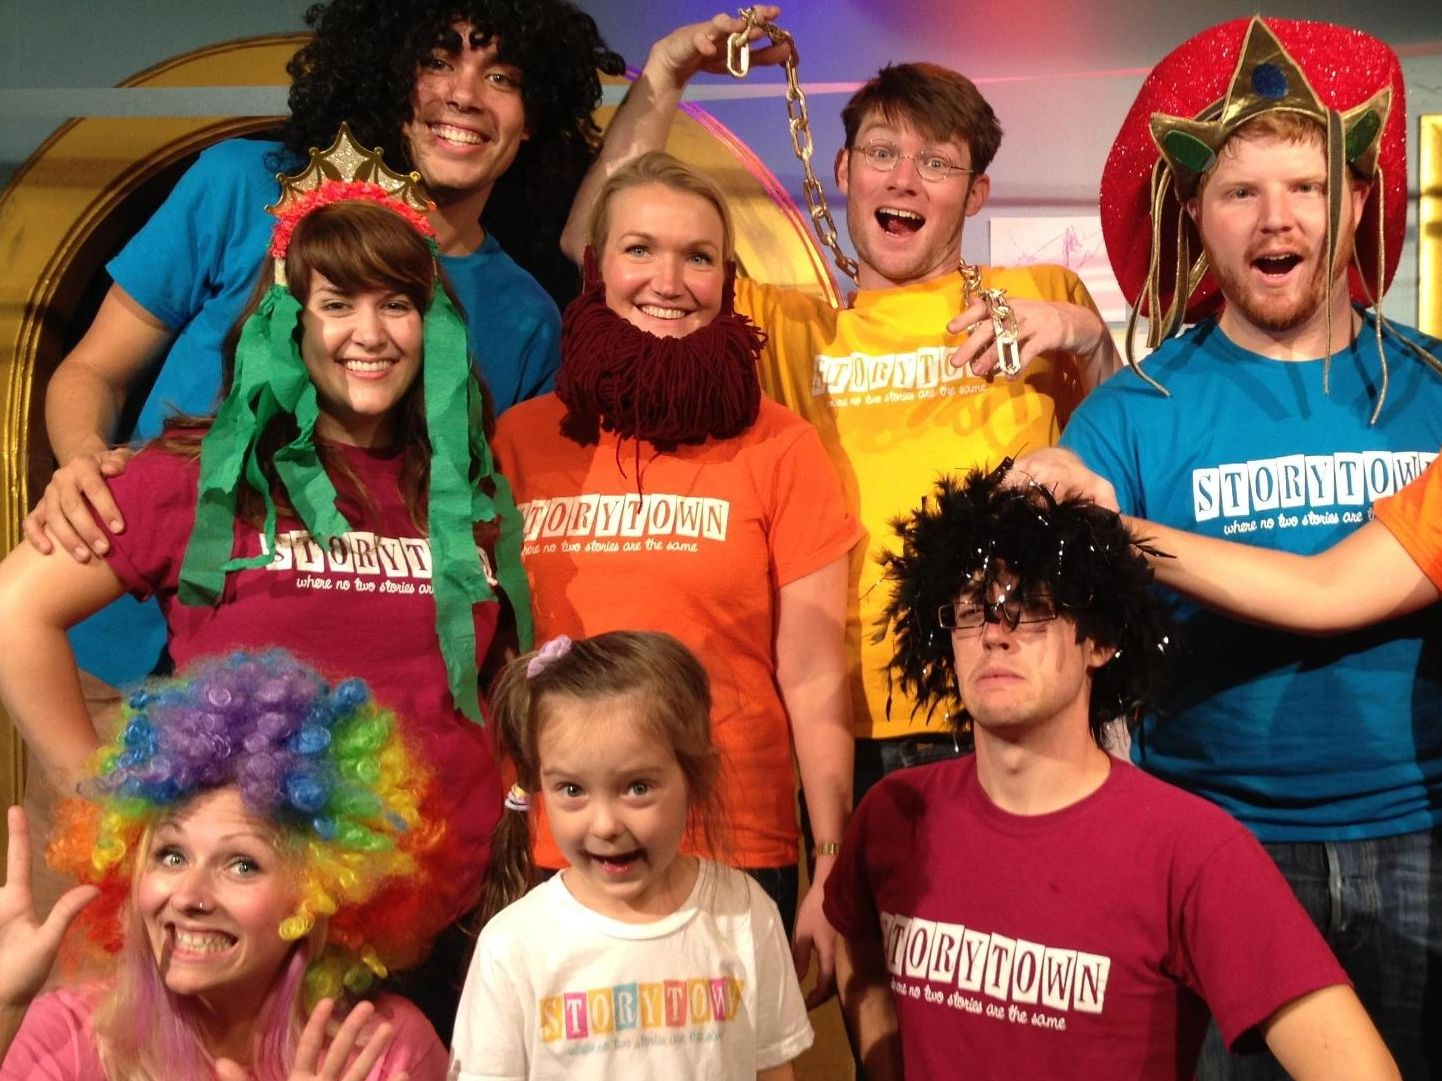 Storytown Improv performing improvised children's musical theater comedy